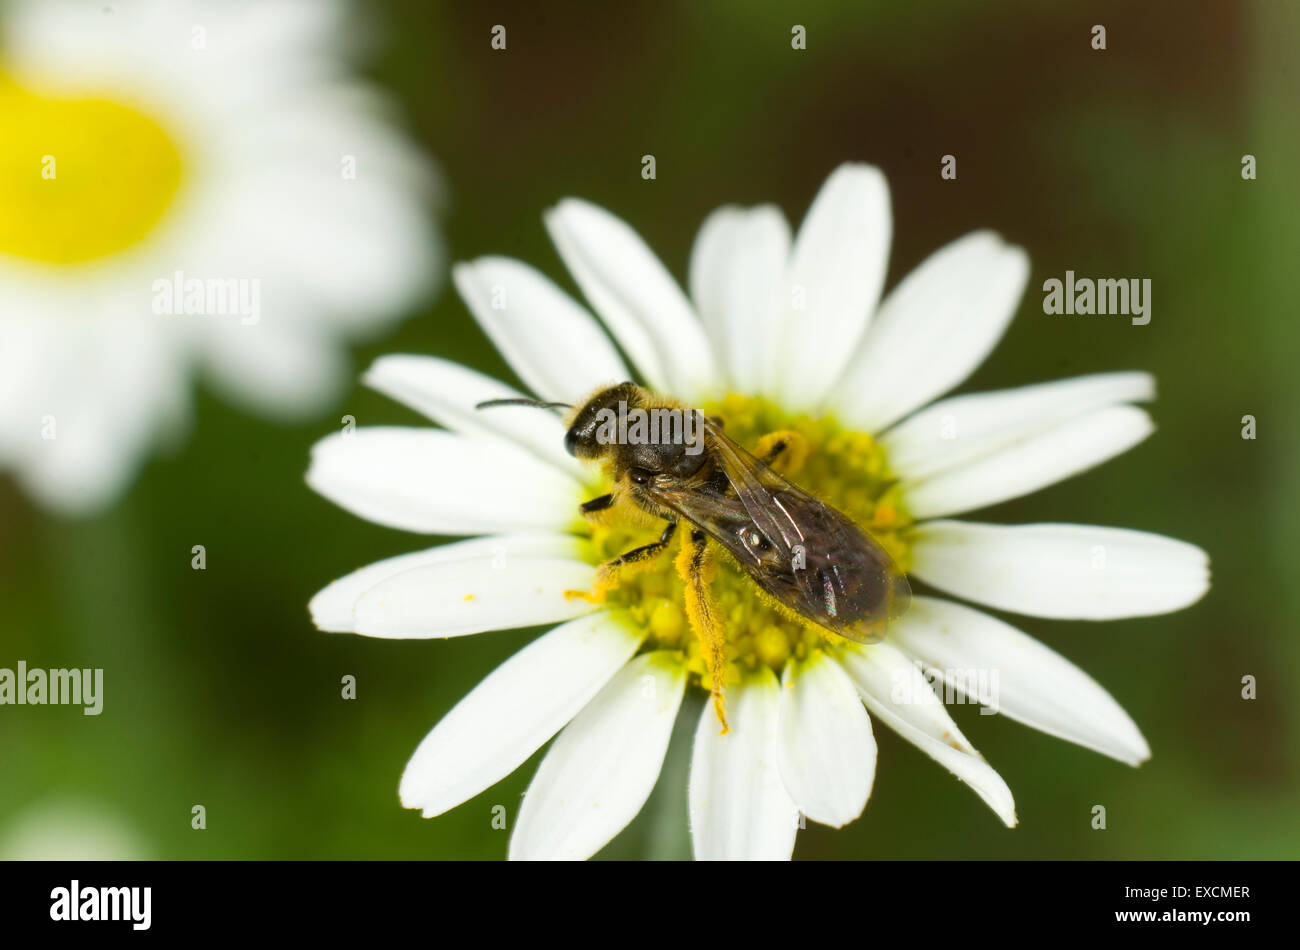 Small sweat bee covered in pollen on a corn chamomile flower - Stock Image